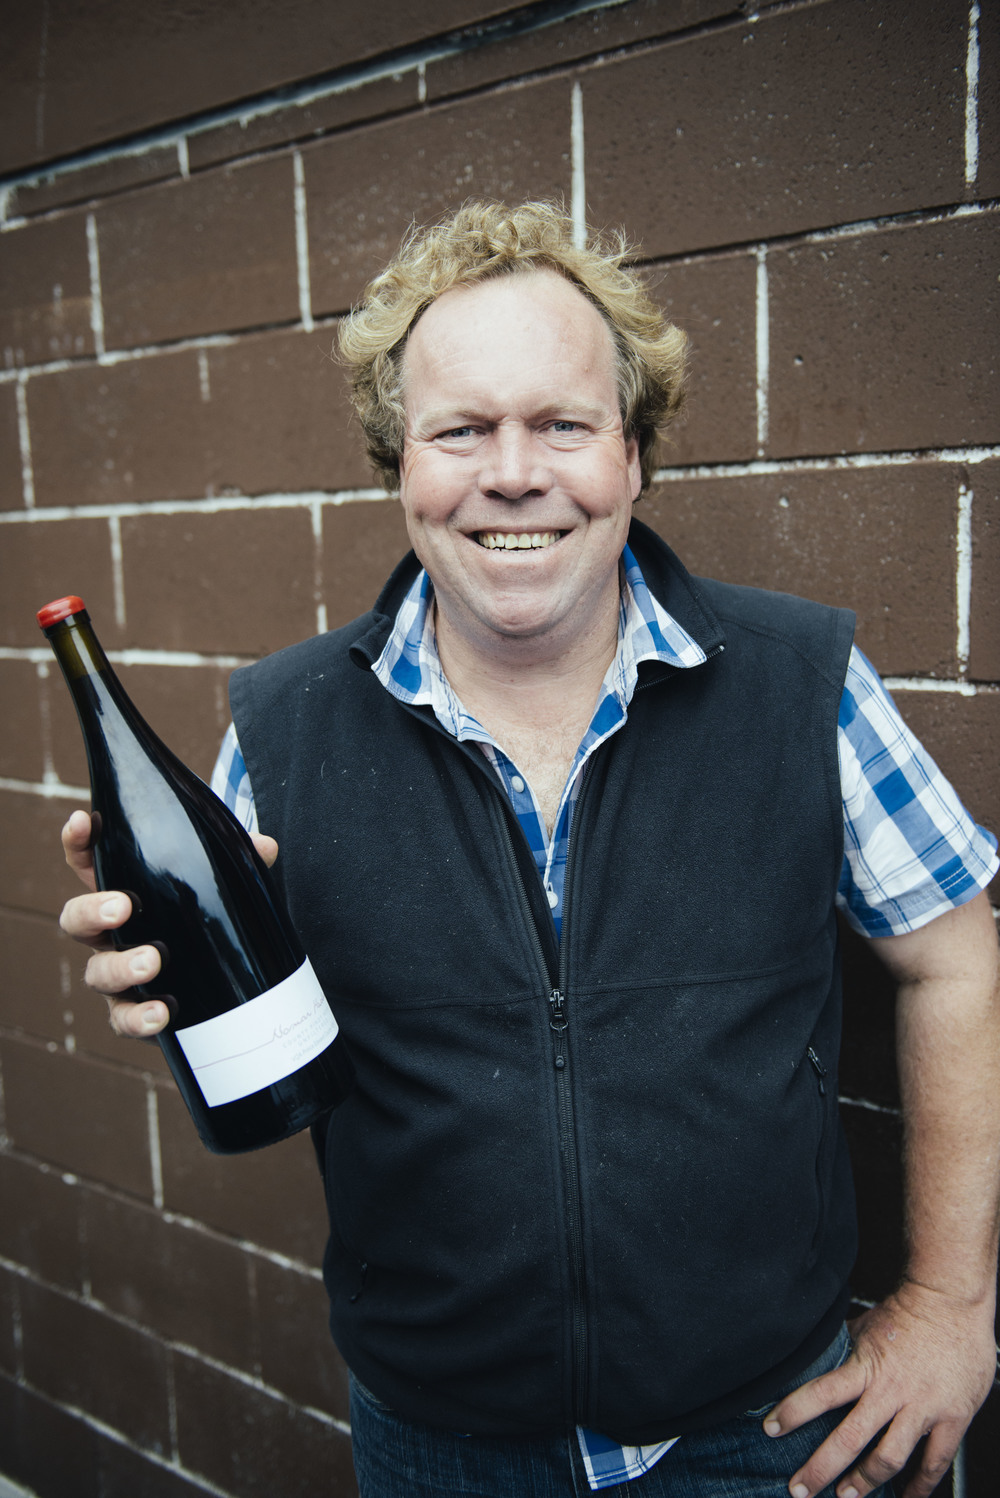 Winemaker Norman Hardie